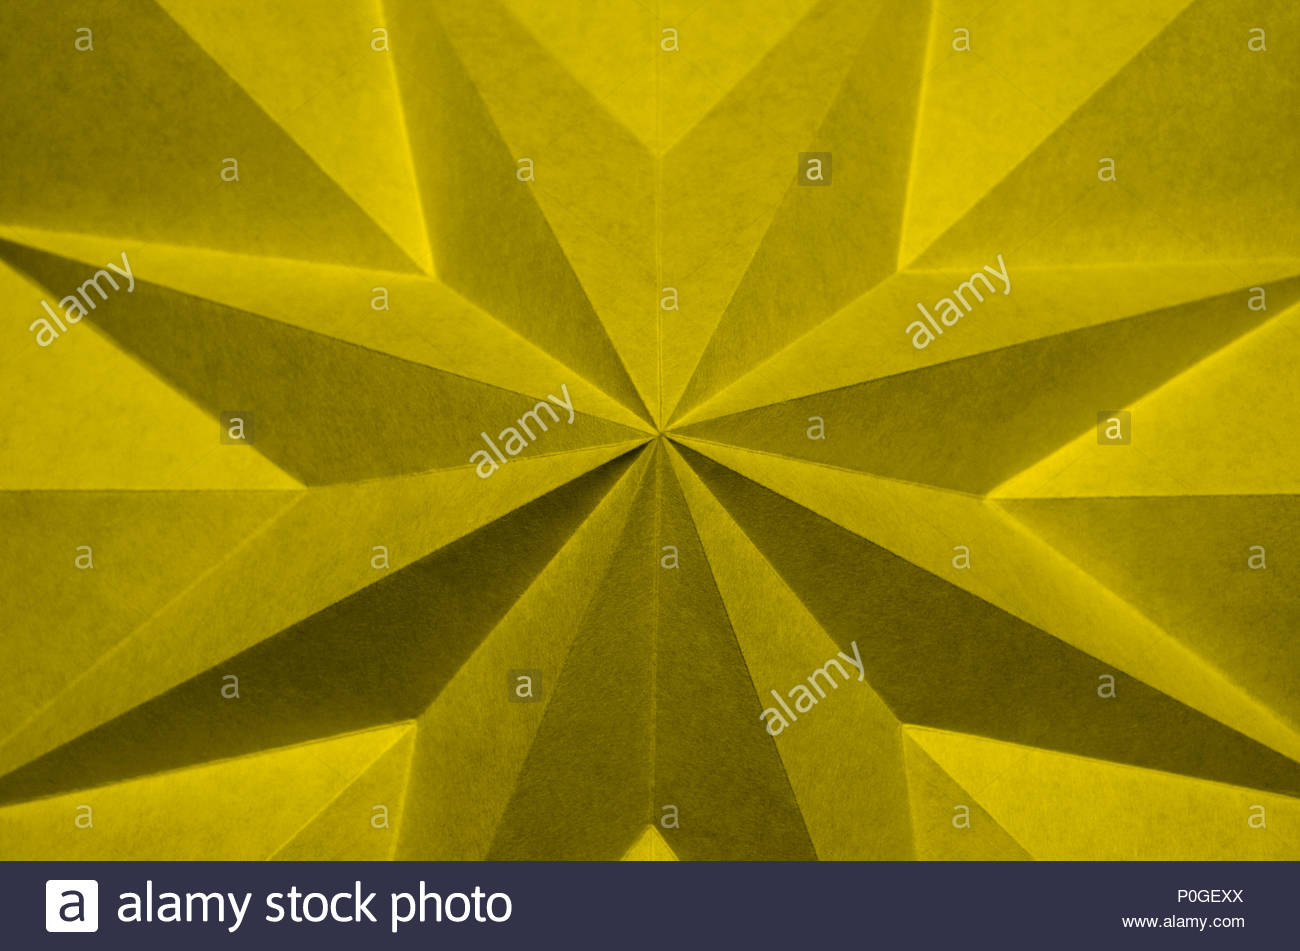 yellow origami abstract background wallpaper. Pantone 13-0646 ...